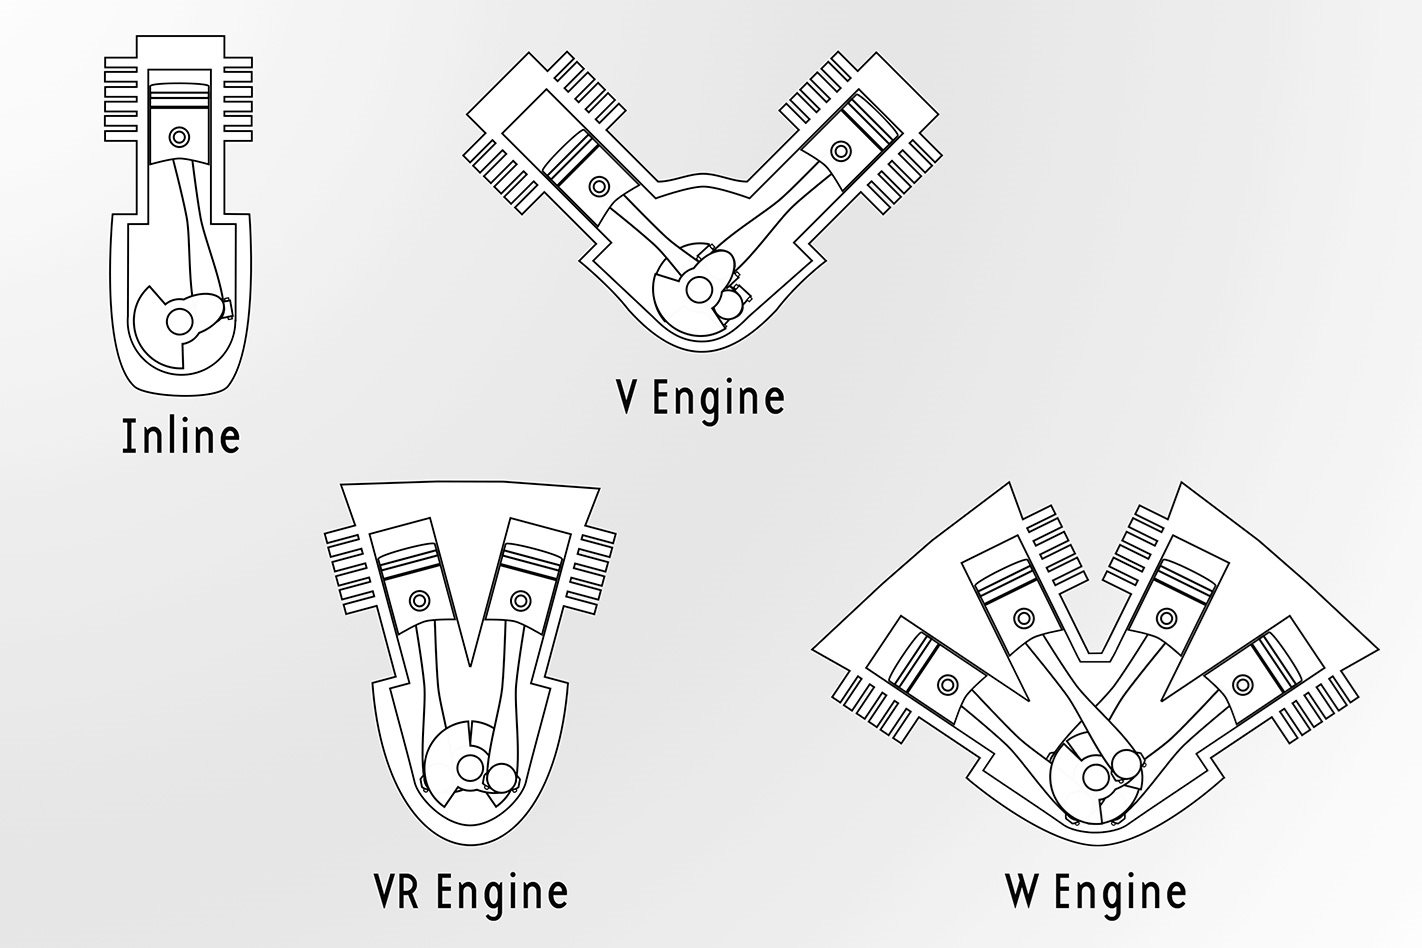 Vw V6 Engine Diagram Simple Guide About Wiring 2003 Volkswagen Passat Farewell To The Vr6 Rh Whichcar Com Au